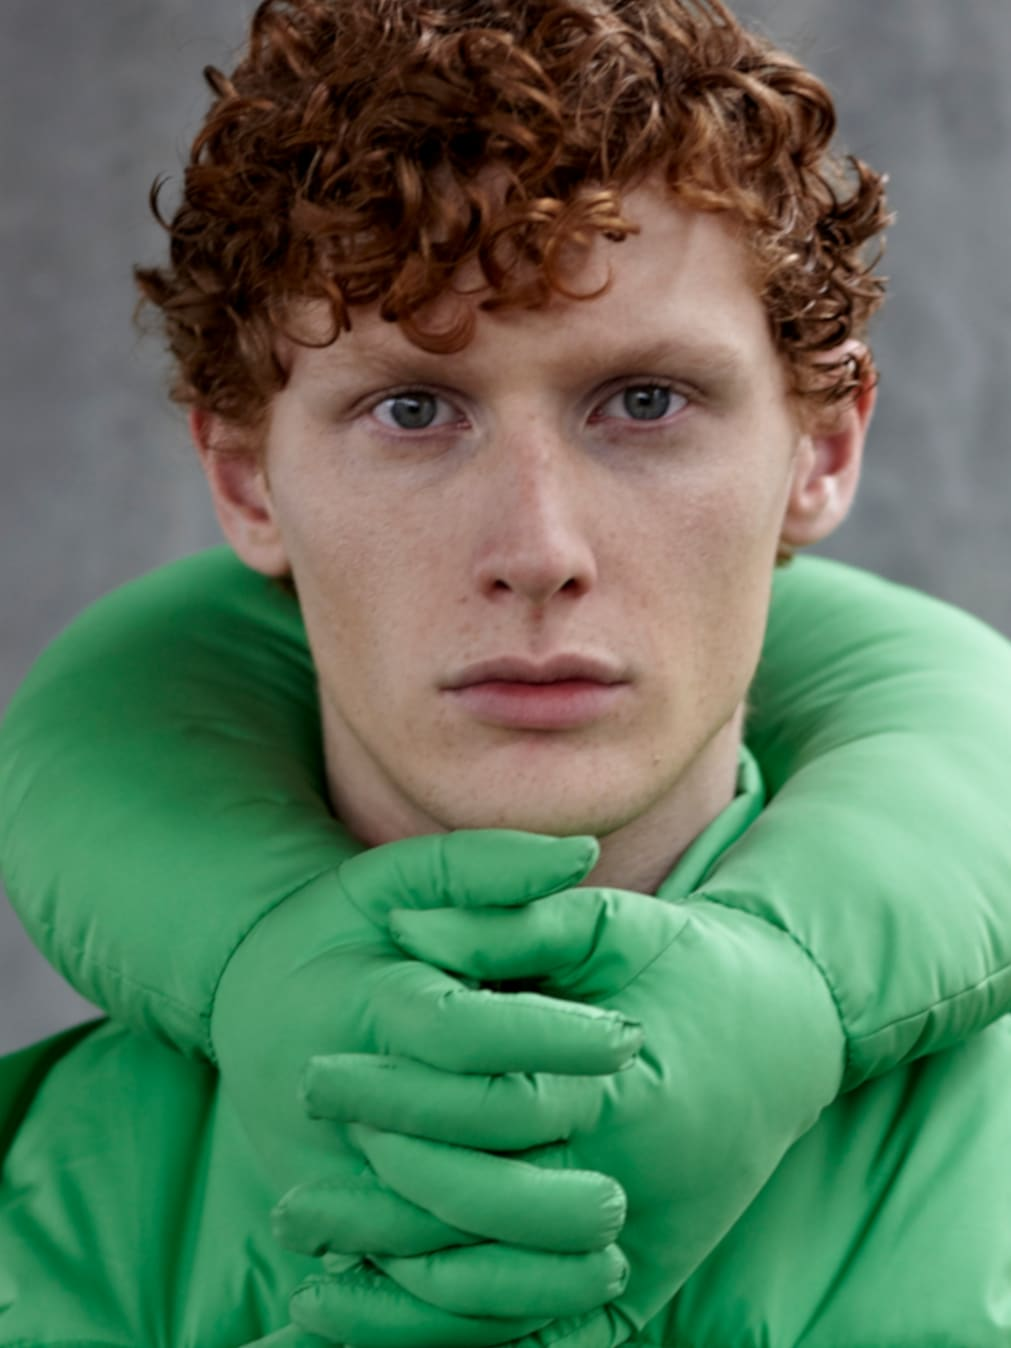 Red-haired model in turquoise padded coat with interlaced fingers